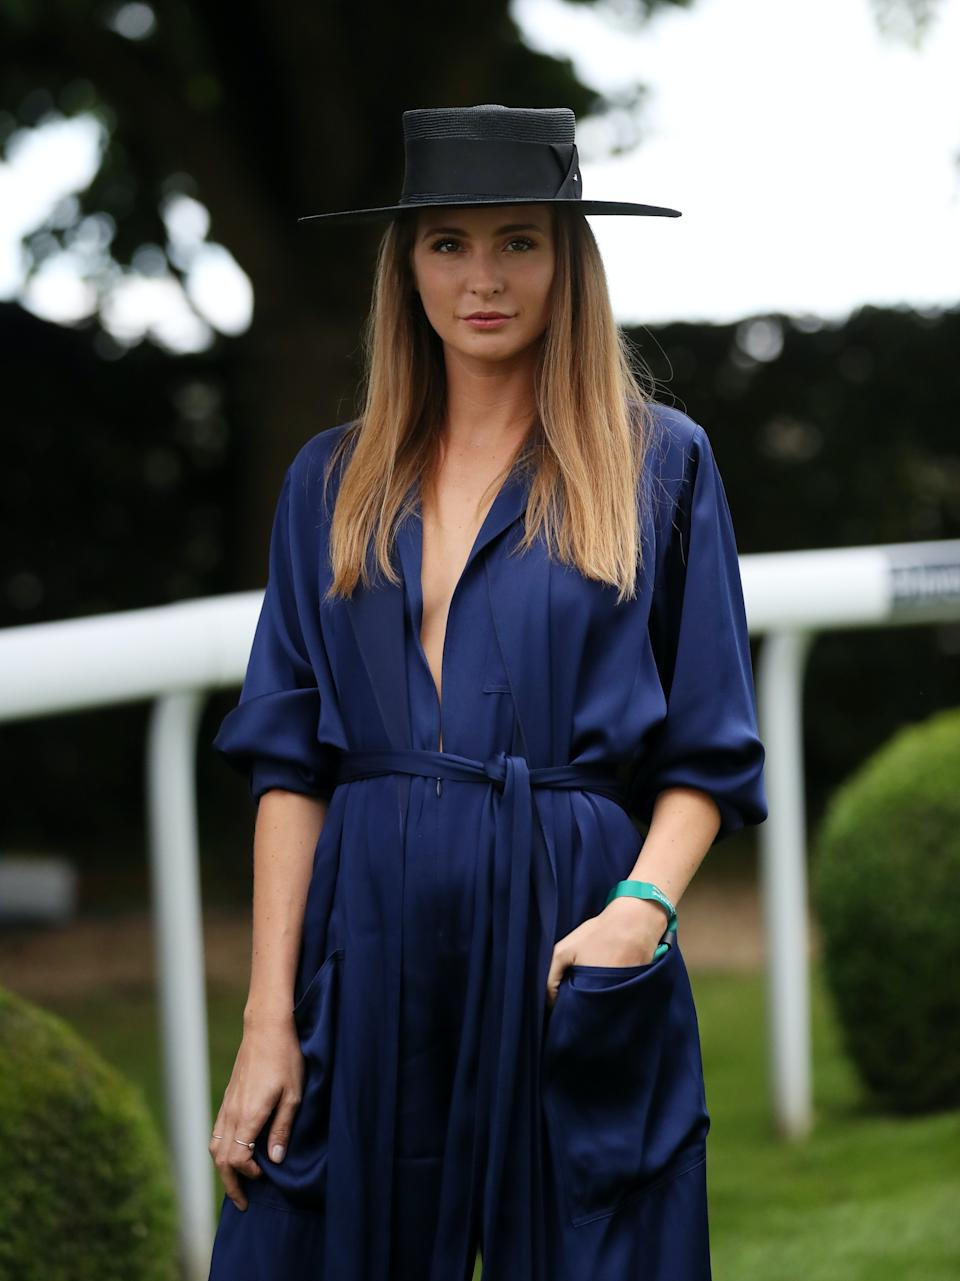 Millie Mackintosh has said she has been on 'cloud nine' since welcoming her daughter. (PA Images)